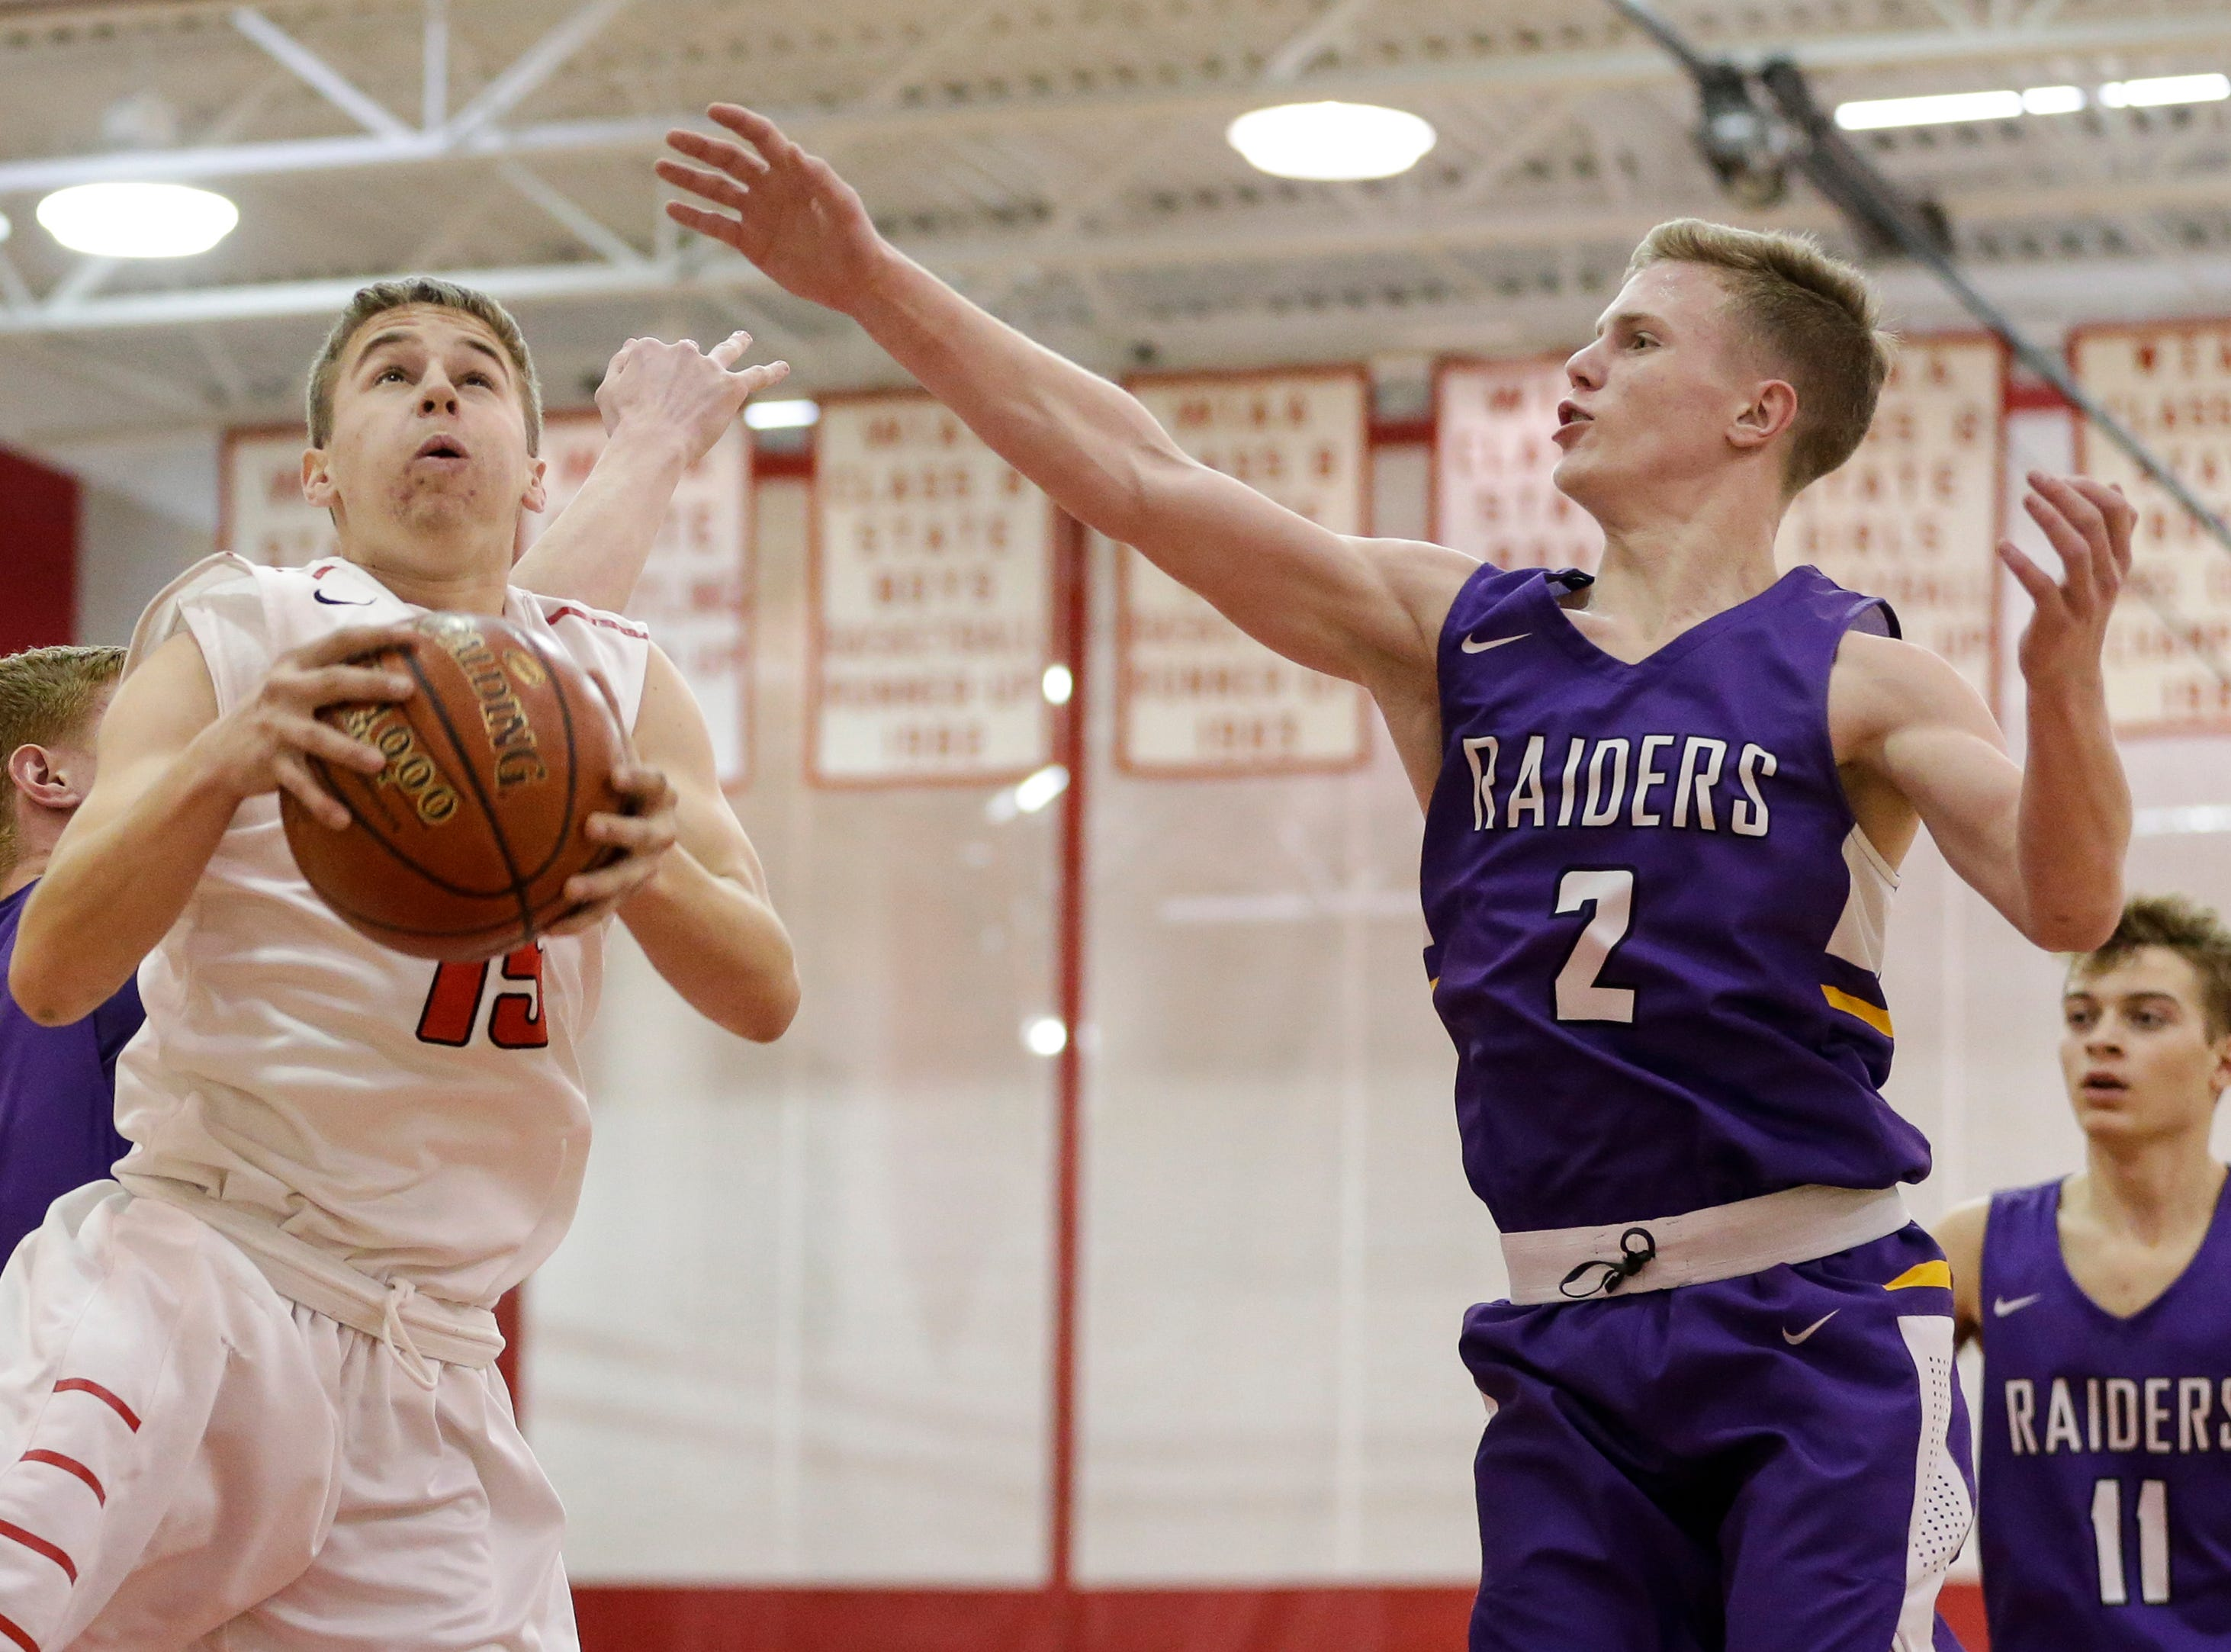 Valders' Brad Otto-Stahl (15) rebounds against Two Rivers' Ethan Limon (2) at Valders High School Thursday, January 24, 2019, in Valders, Wis. Joshua Clark/USA TODAY NETWORK-Wisconsin